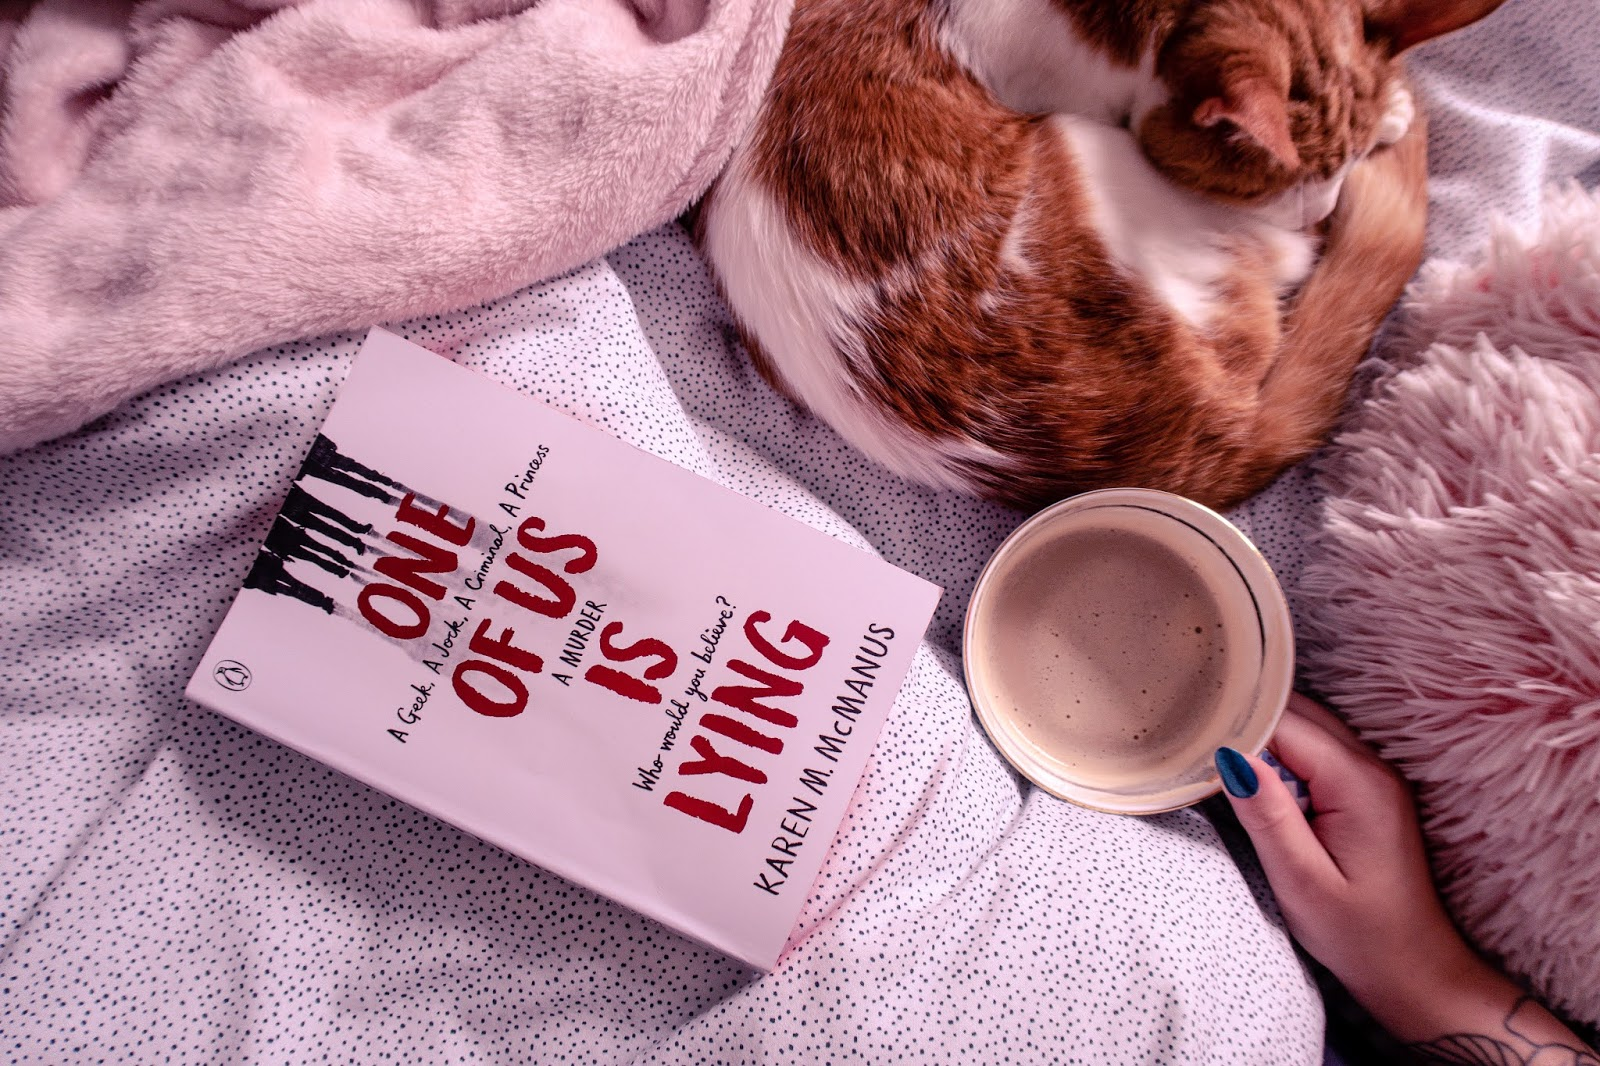 Birds eye view of One of us is lying book on a bed with spotted bedding and a cat to the right with a cup of coffee next to it